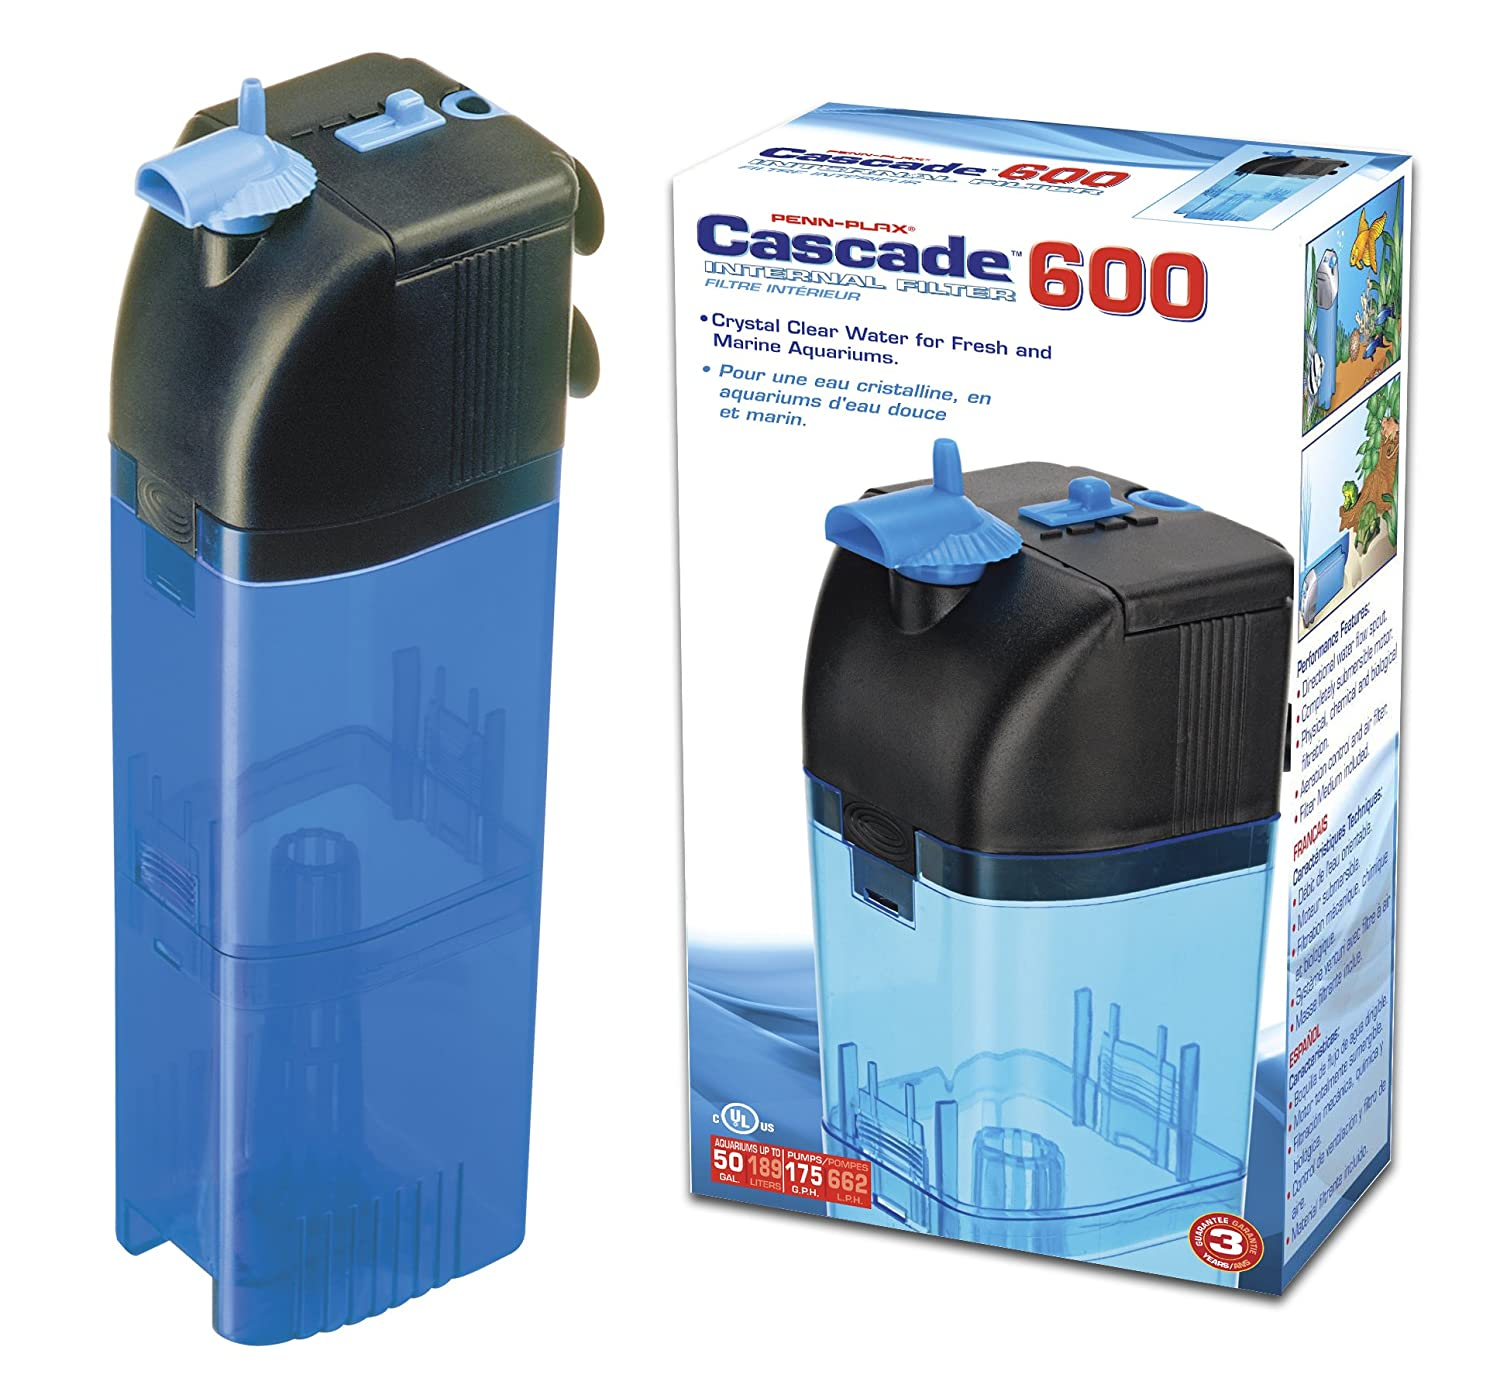 Penn Plax Cascade 600 Internal Filter for Aquariums by Penn-Plax B0002DJLFK